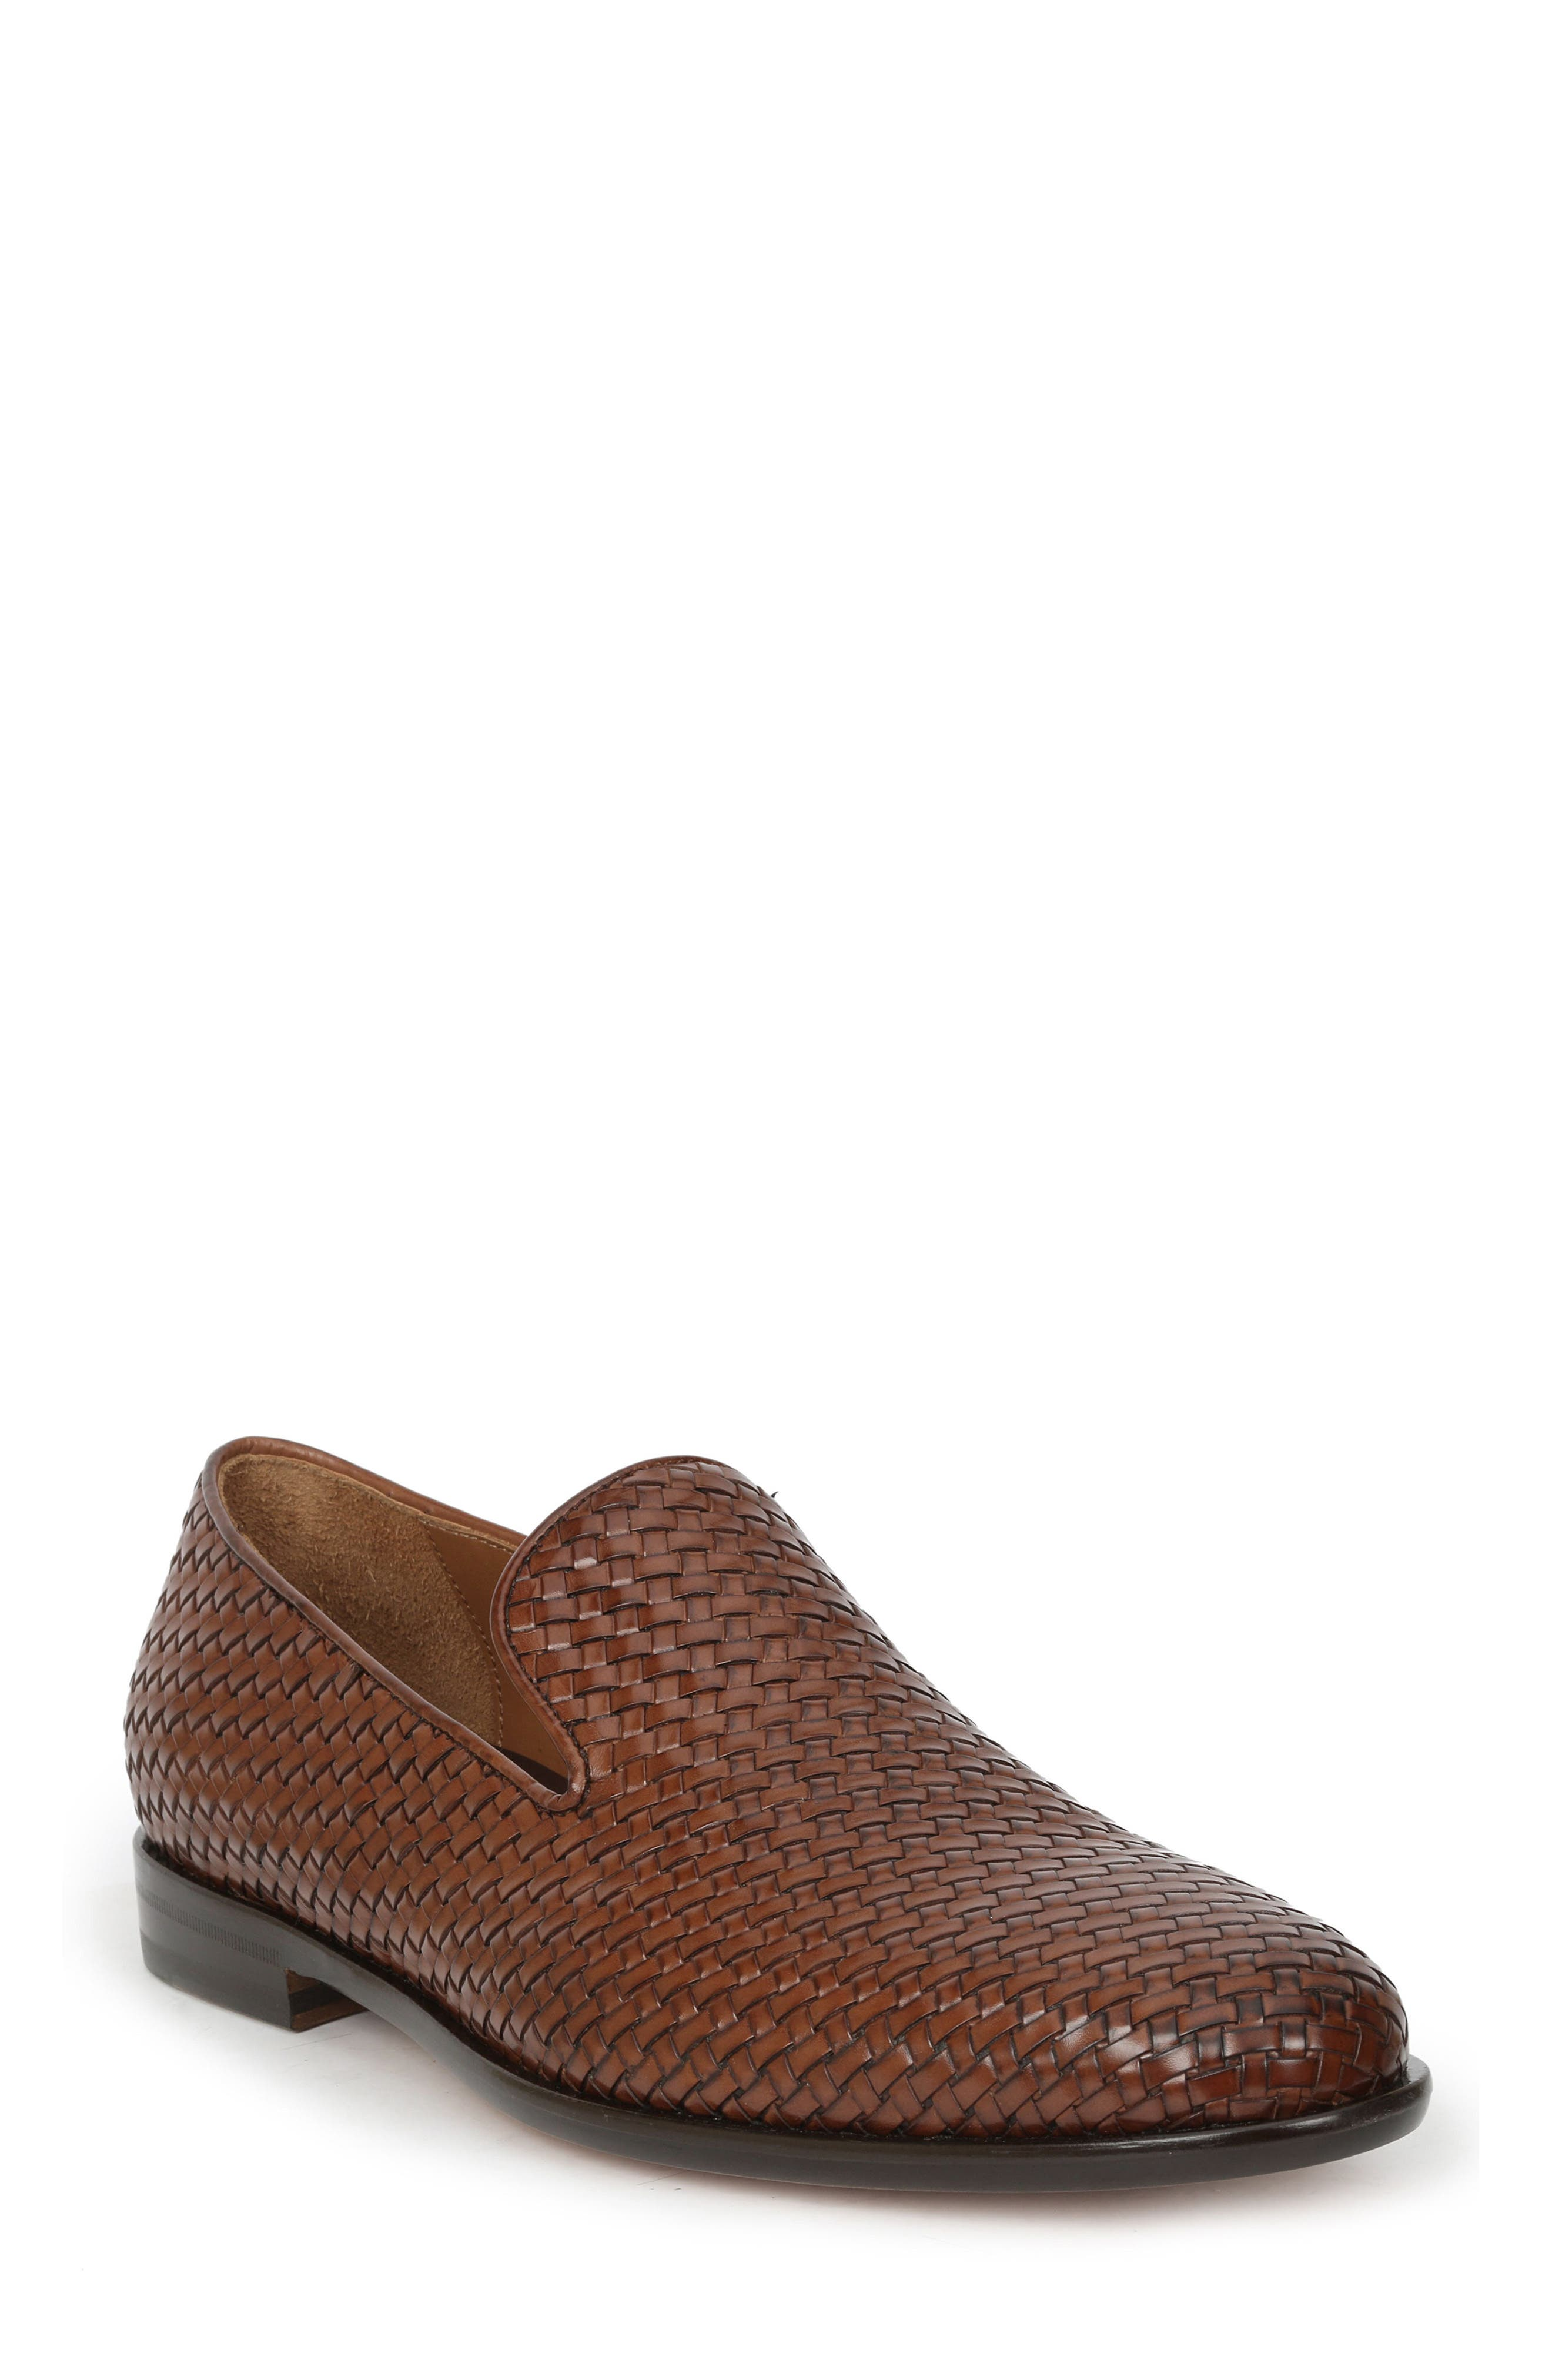 Picasso Woven Venetian Loafer,                             Main thumbnail 1, color,                             Cognac